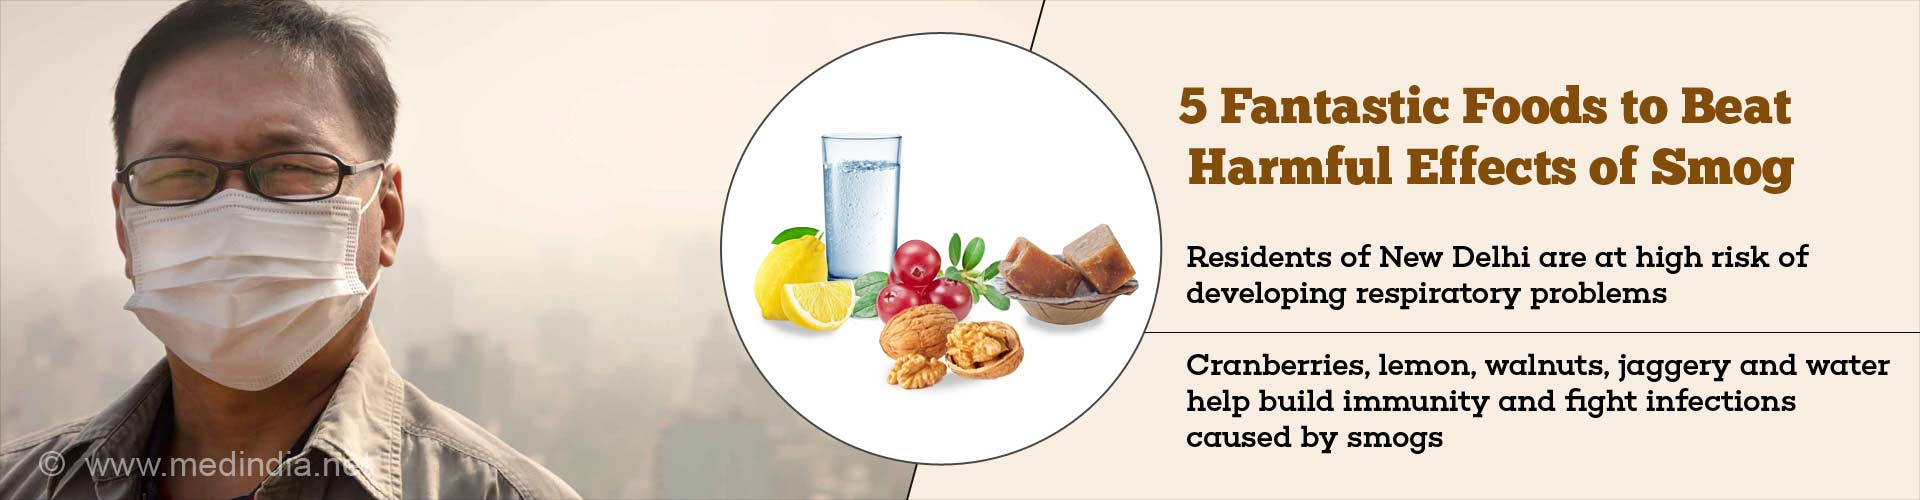 5 fantastic foods to beat harmful effects of smog